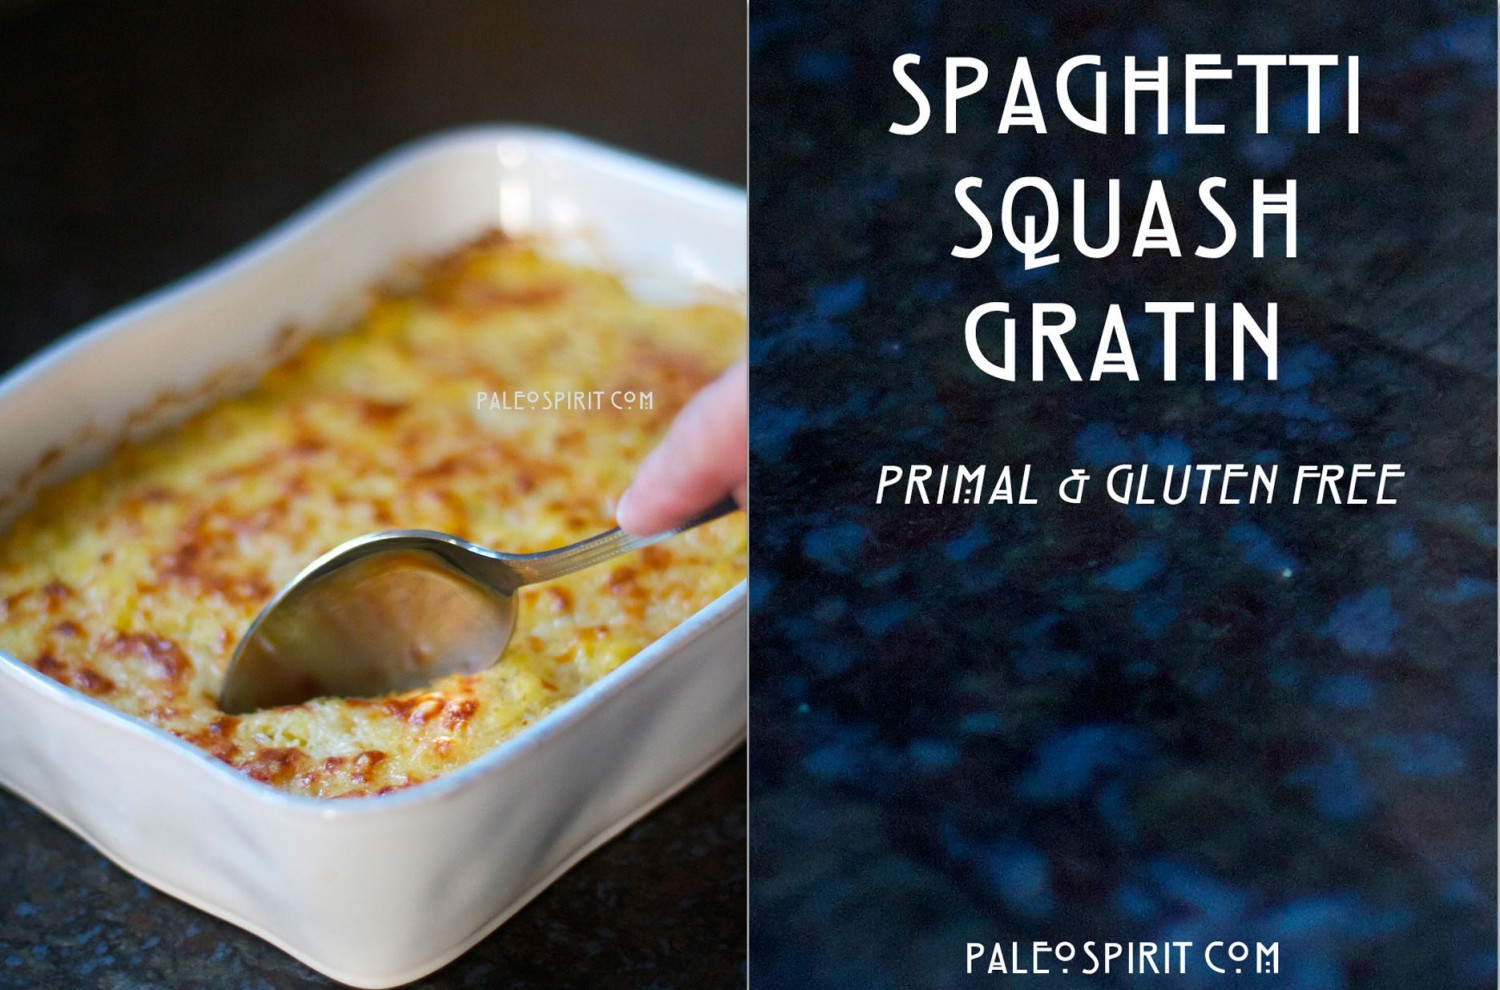 Warning! The recipe for Spaghetti Squash Gratin contains dairy ...